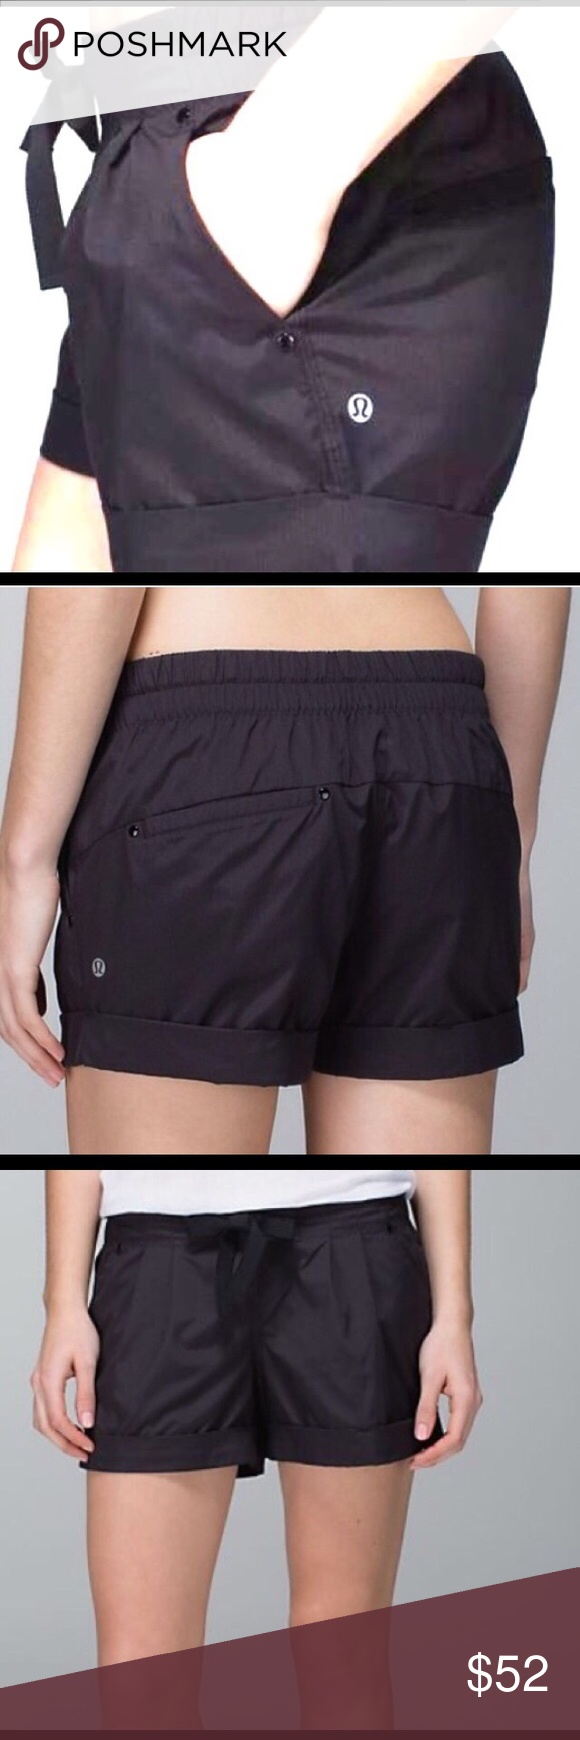 Lululemon Spring Breakaway Short Sz4 Lululemon Black size 4 Spring Breakaway short. Worn 3x and in beautiful condition. Elastic waistband, and extremely comfortable. lululemon athletica Shorts